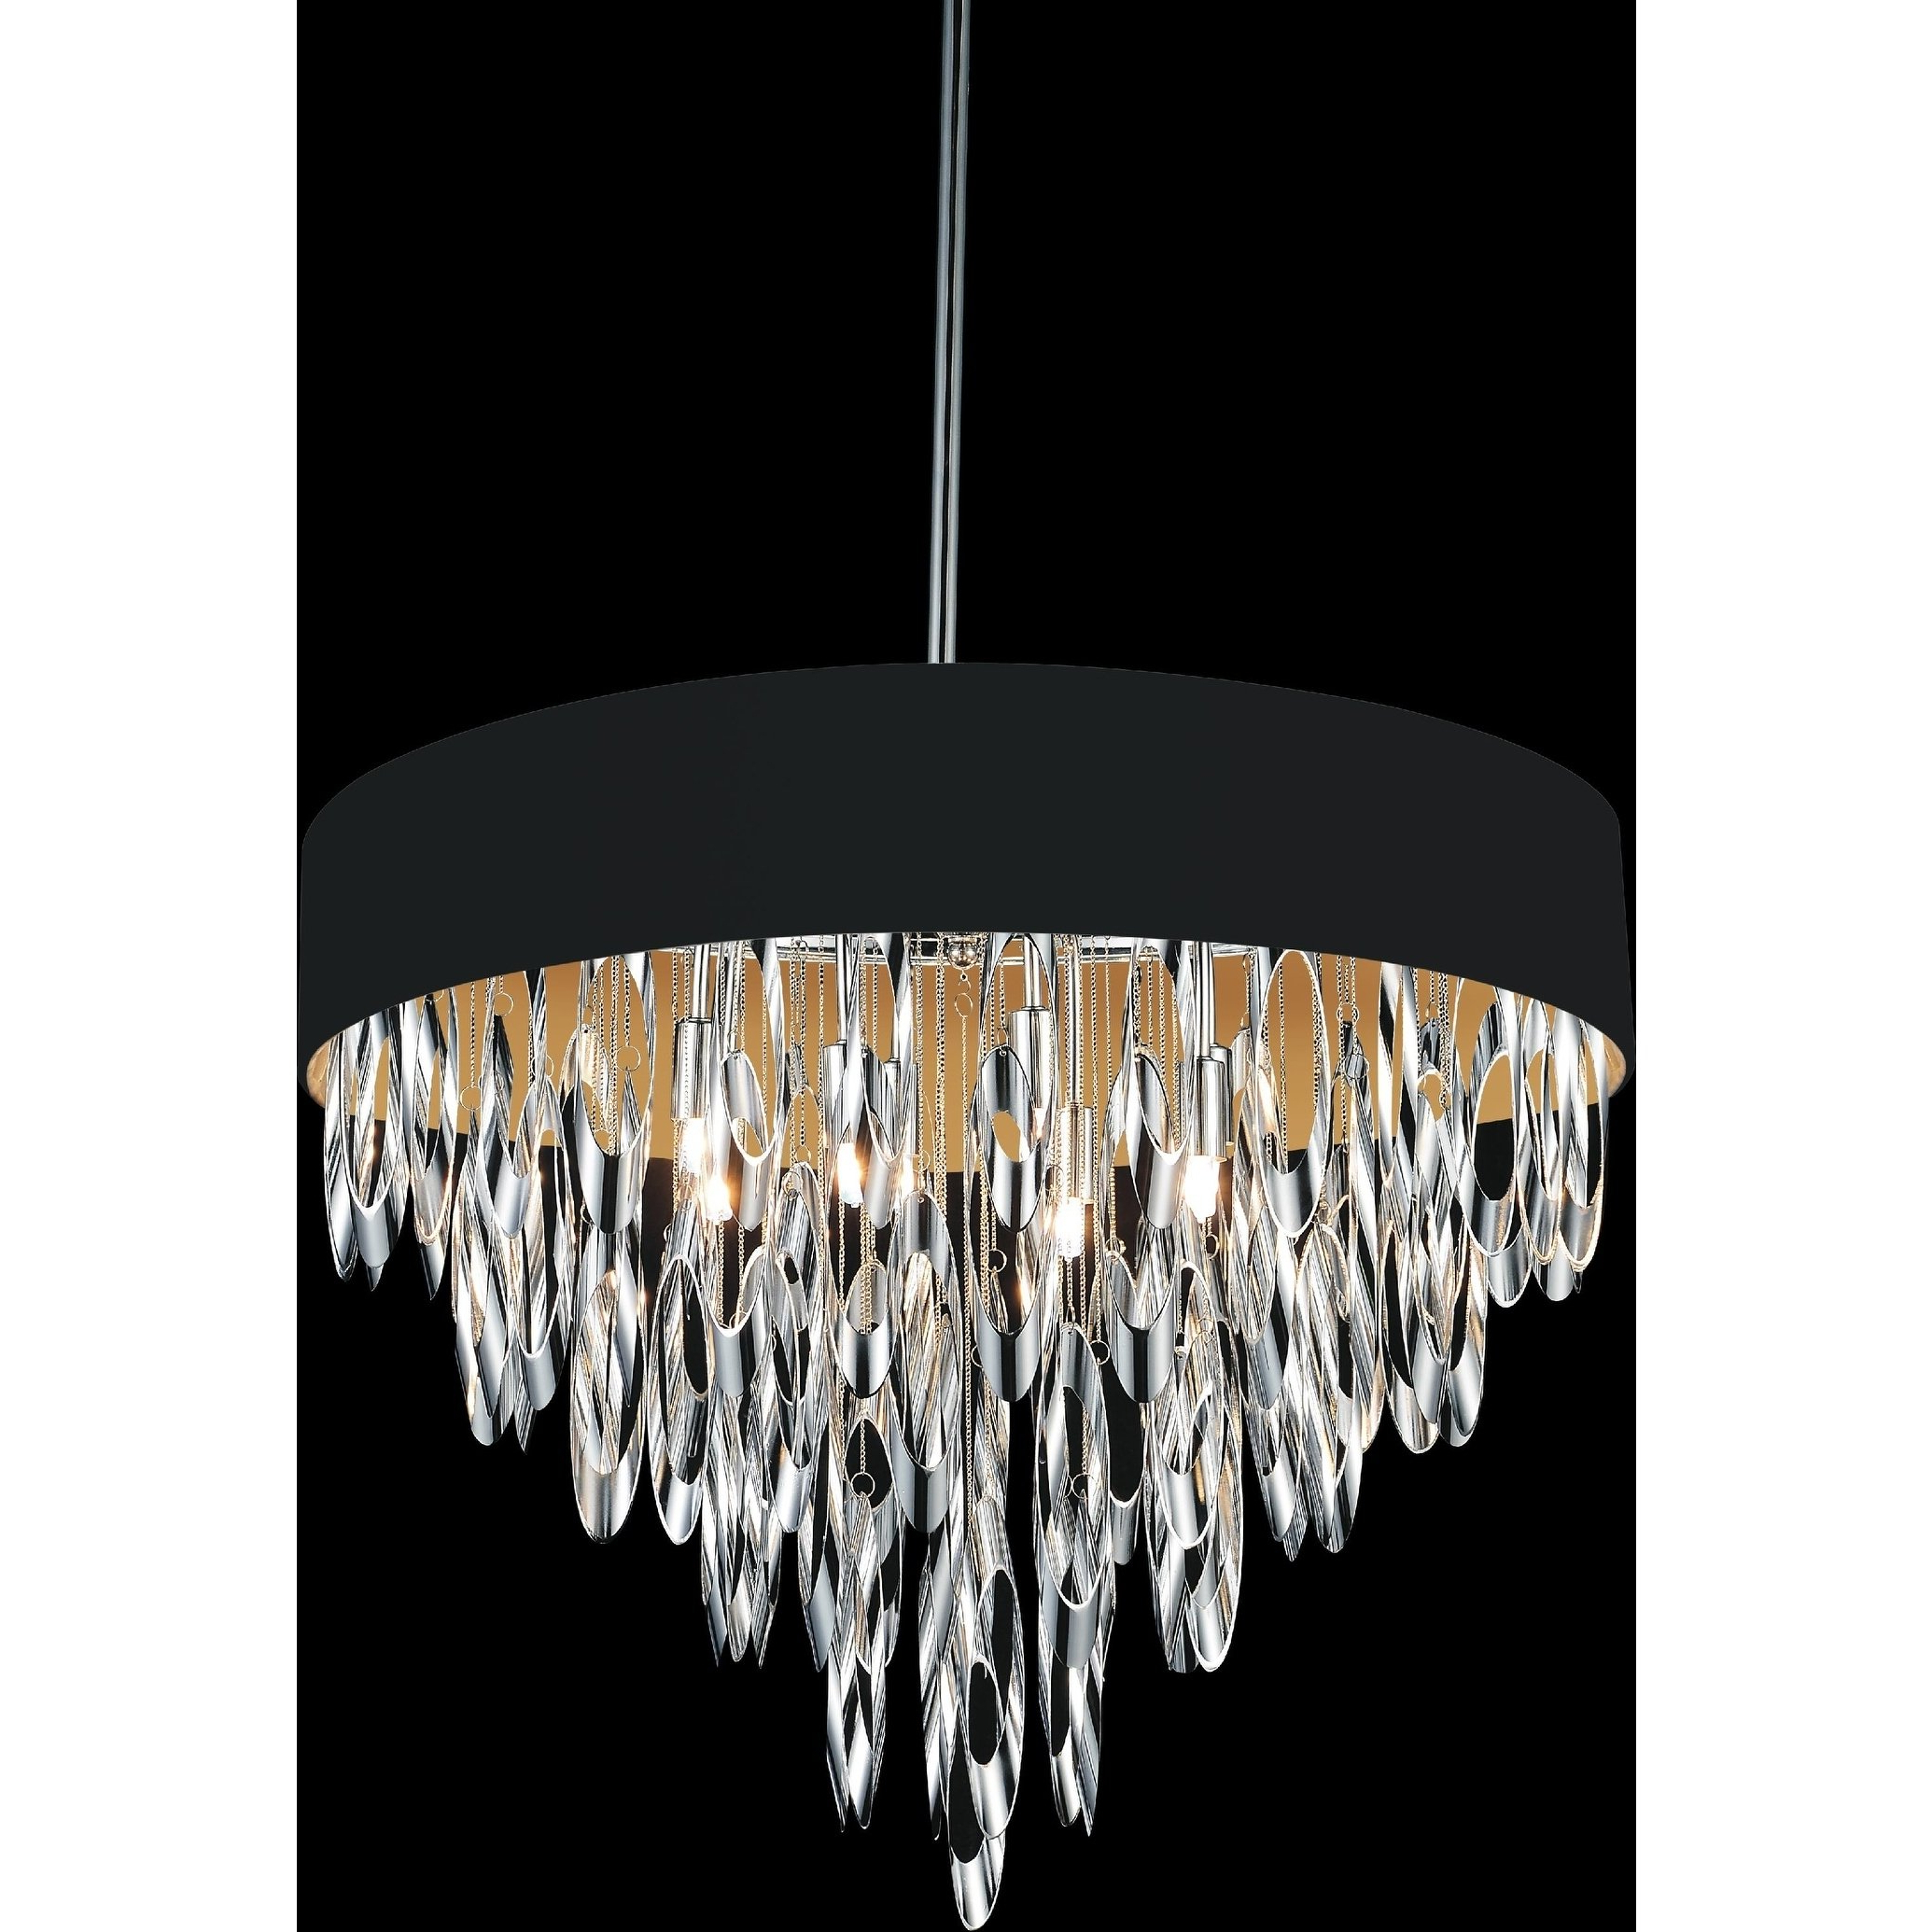 Products With Regard To Gisselle 4 Light Drum Chandeliers (View 19 of 25)